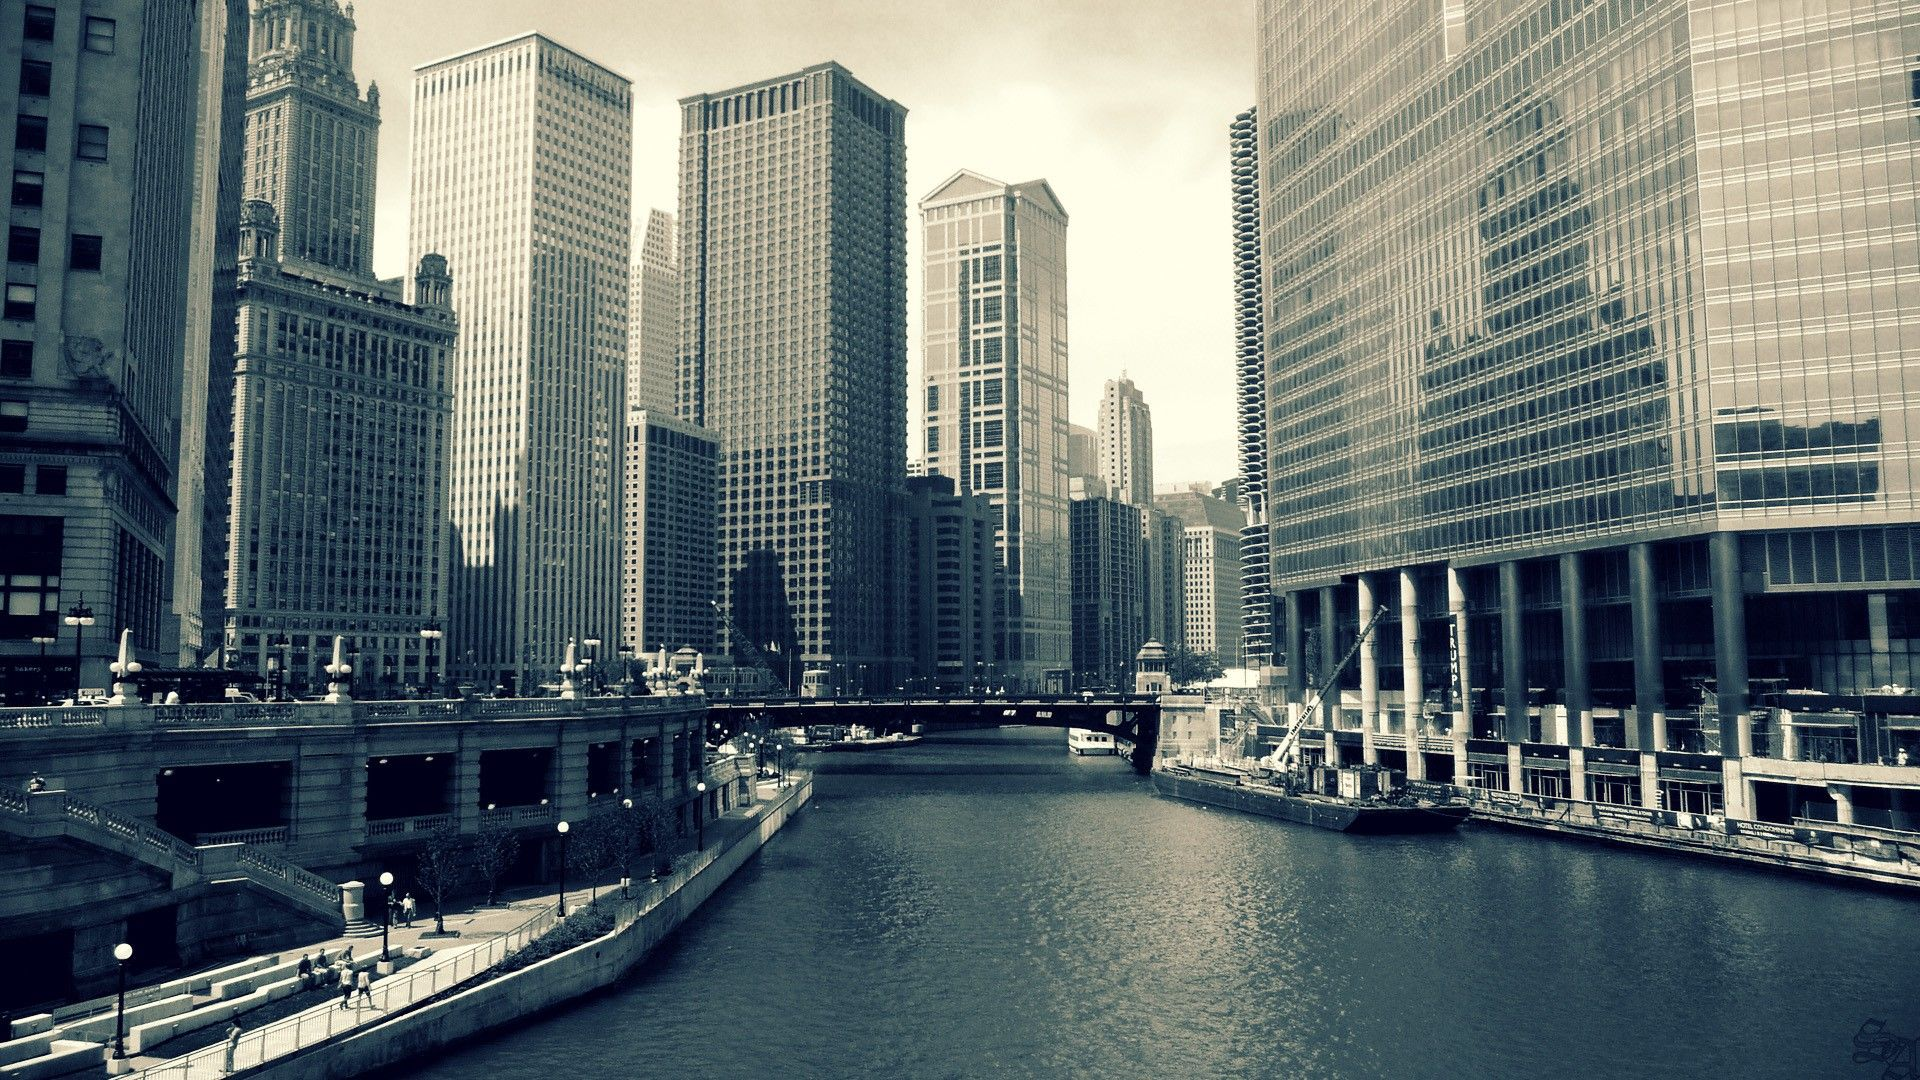 HD Wall Paper 1920X1080 Chicago Cityscapes Chicago